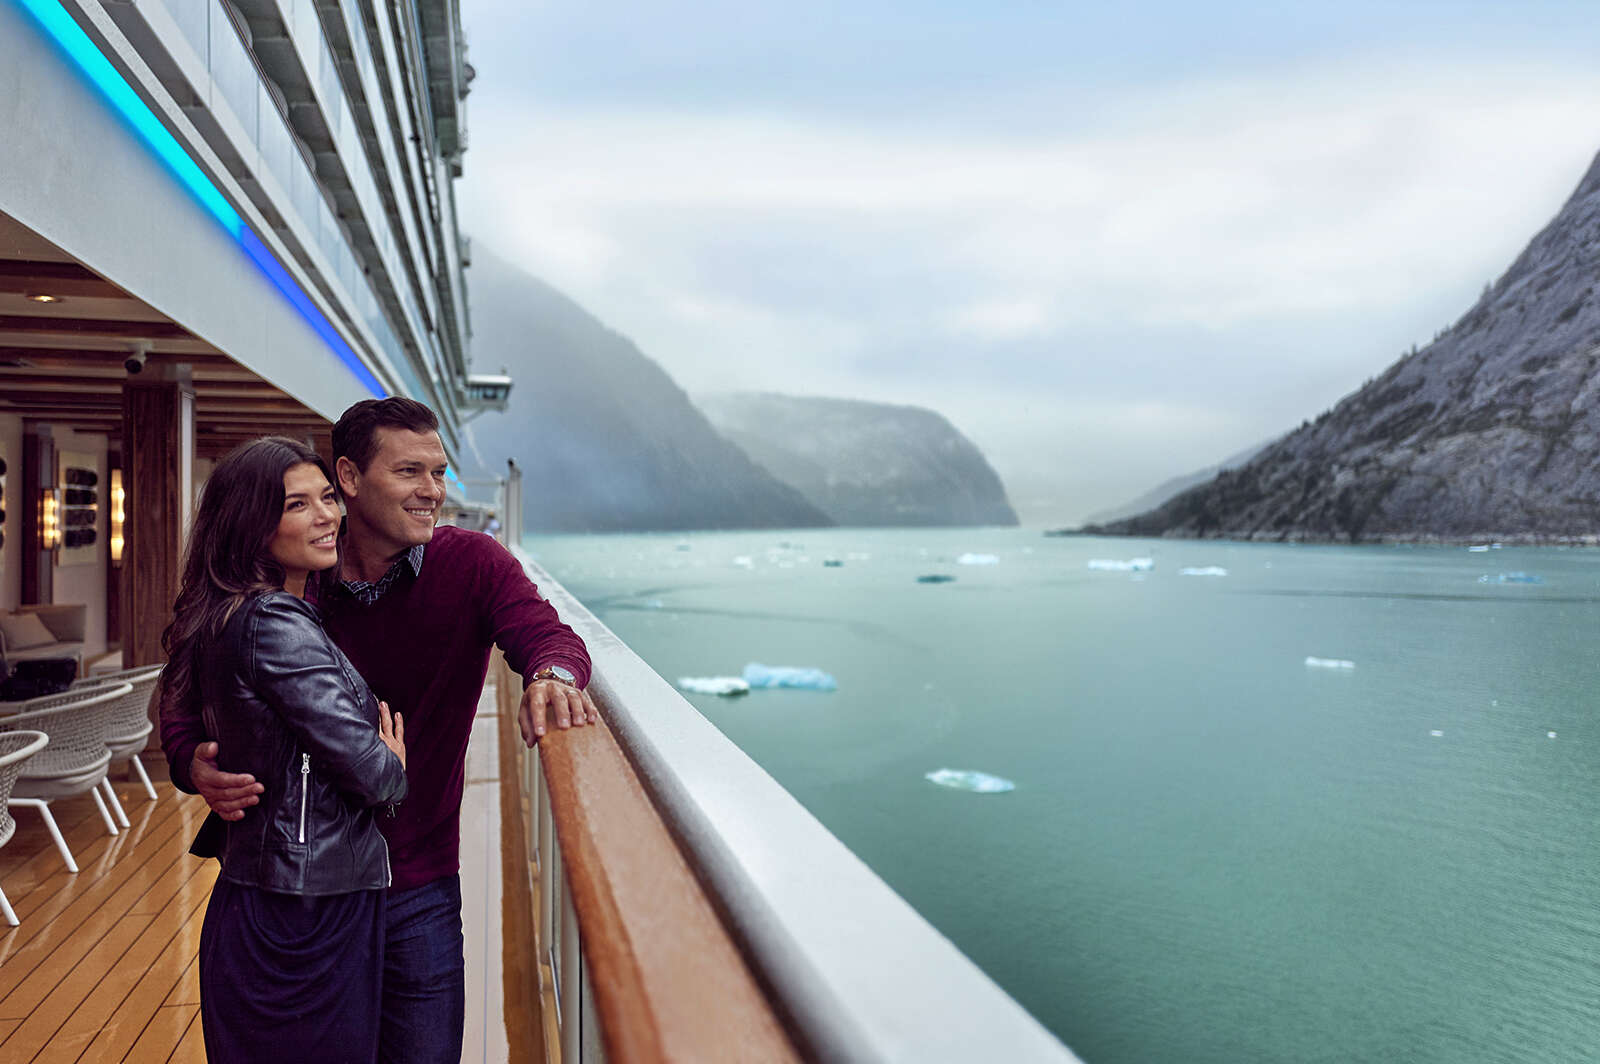 Feel Free with Norwegian Cruise Line! Receive up to 5 free offers!